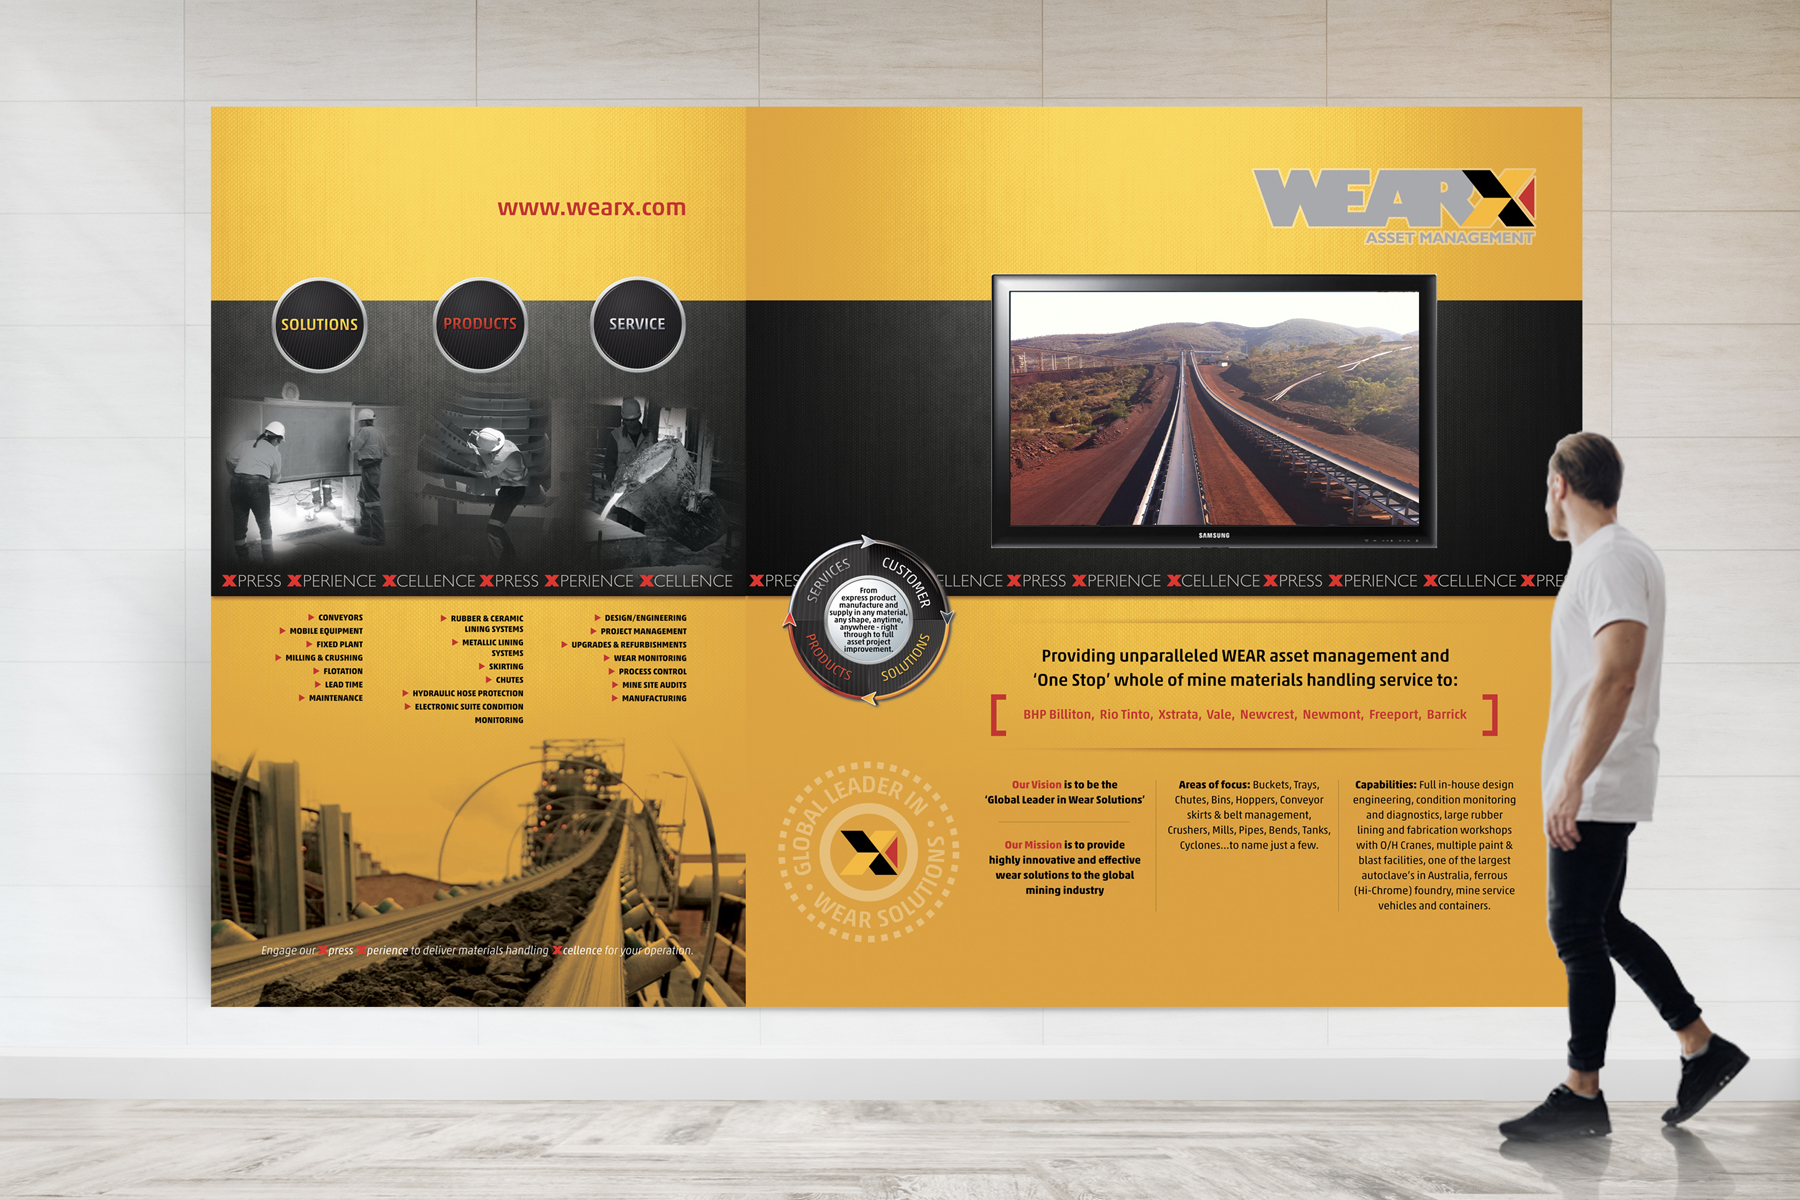 WEARX Information Display Wall with Video Monitor